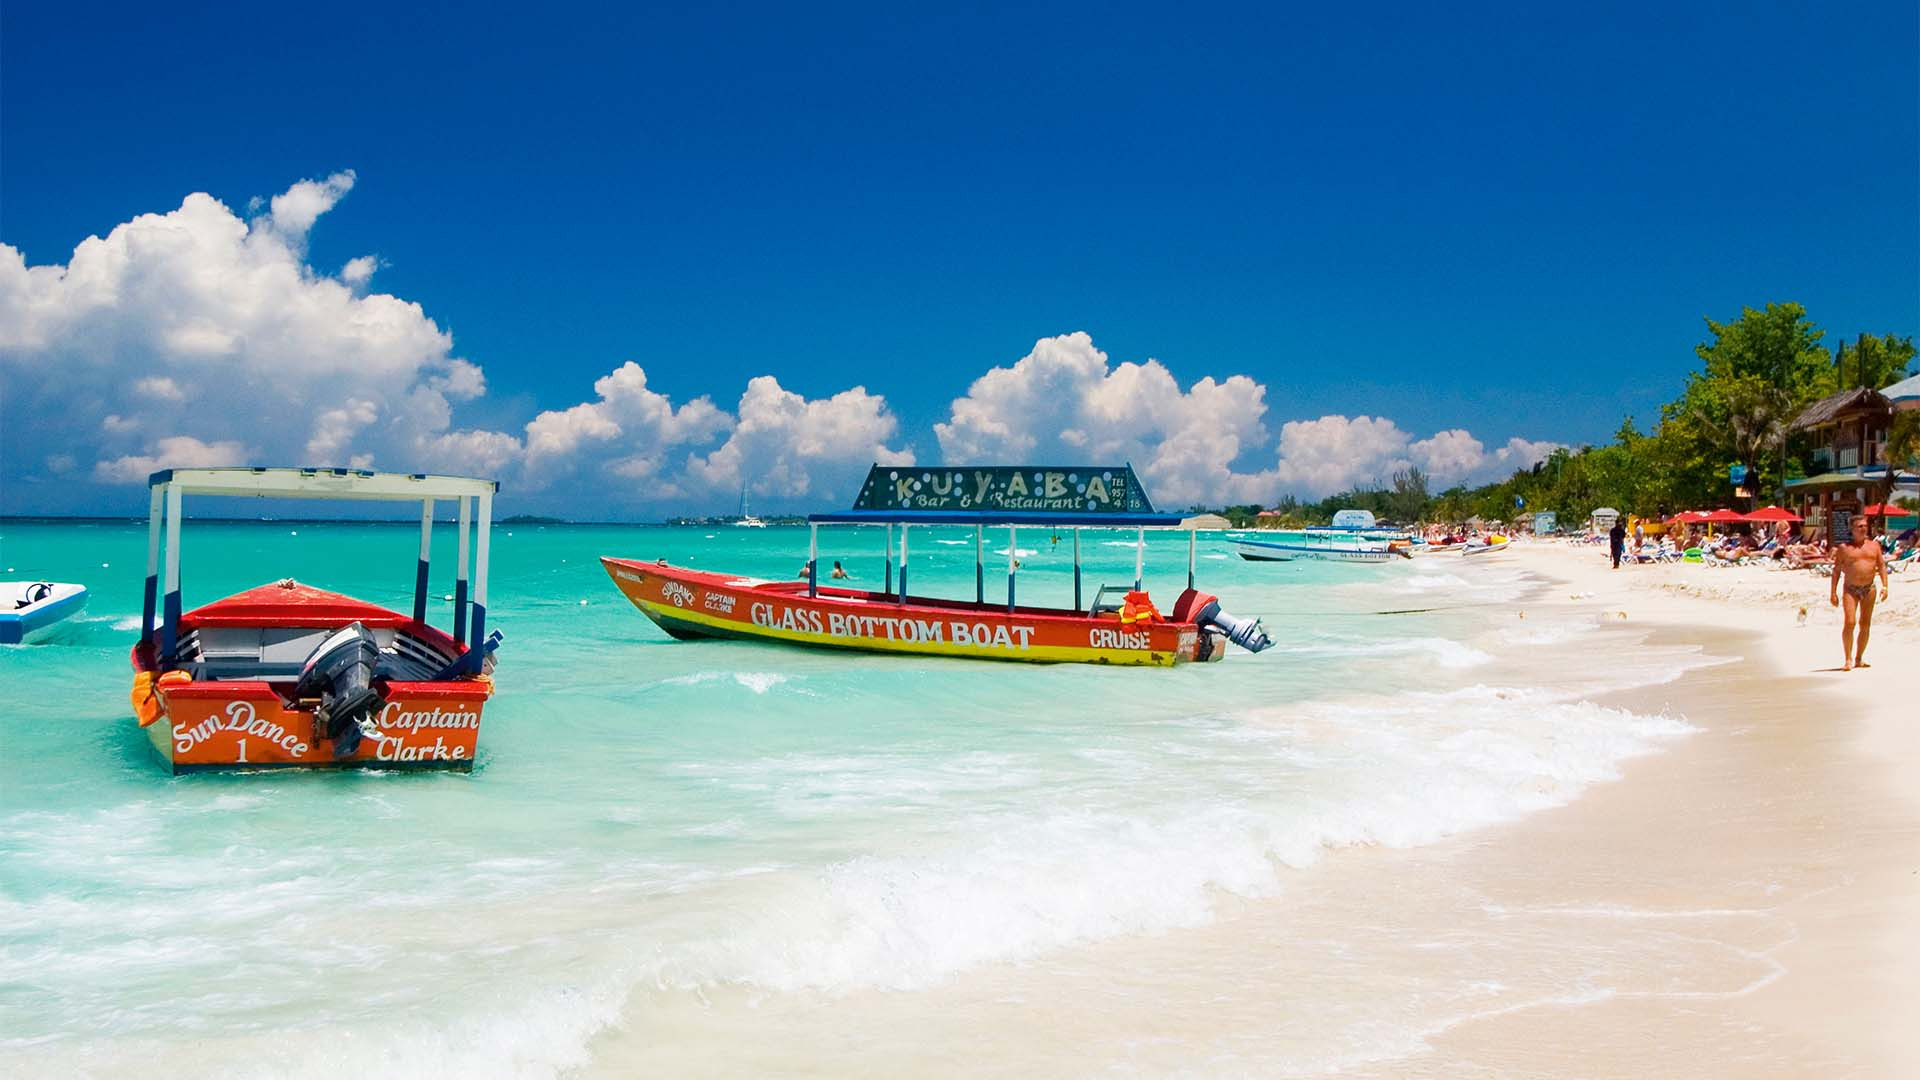 Sea, sand and boats at Seven Mile Beach, Negril